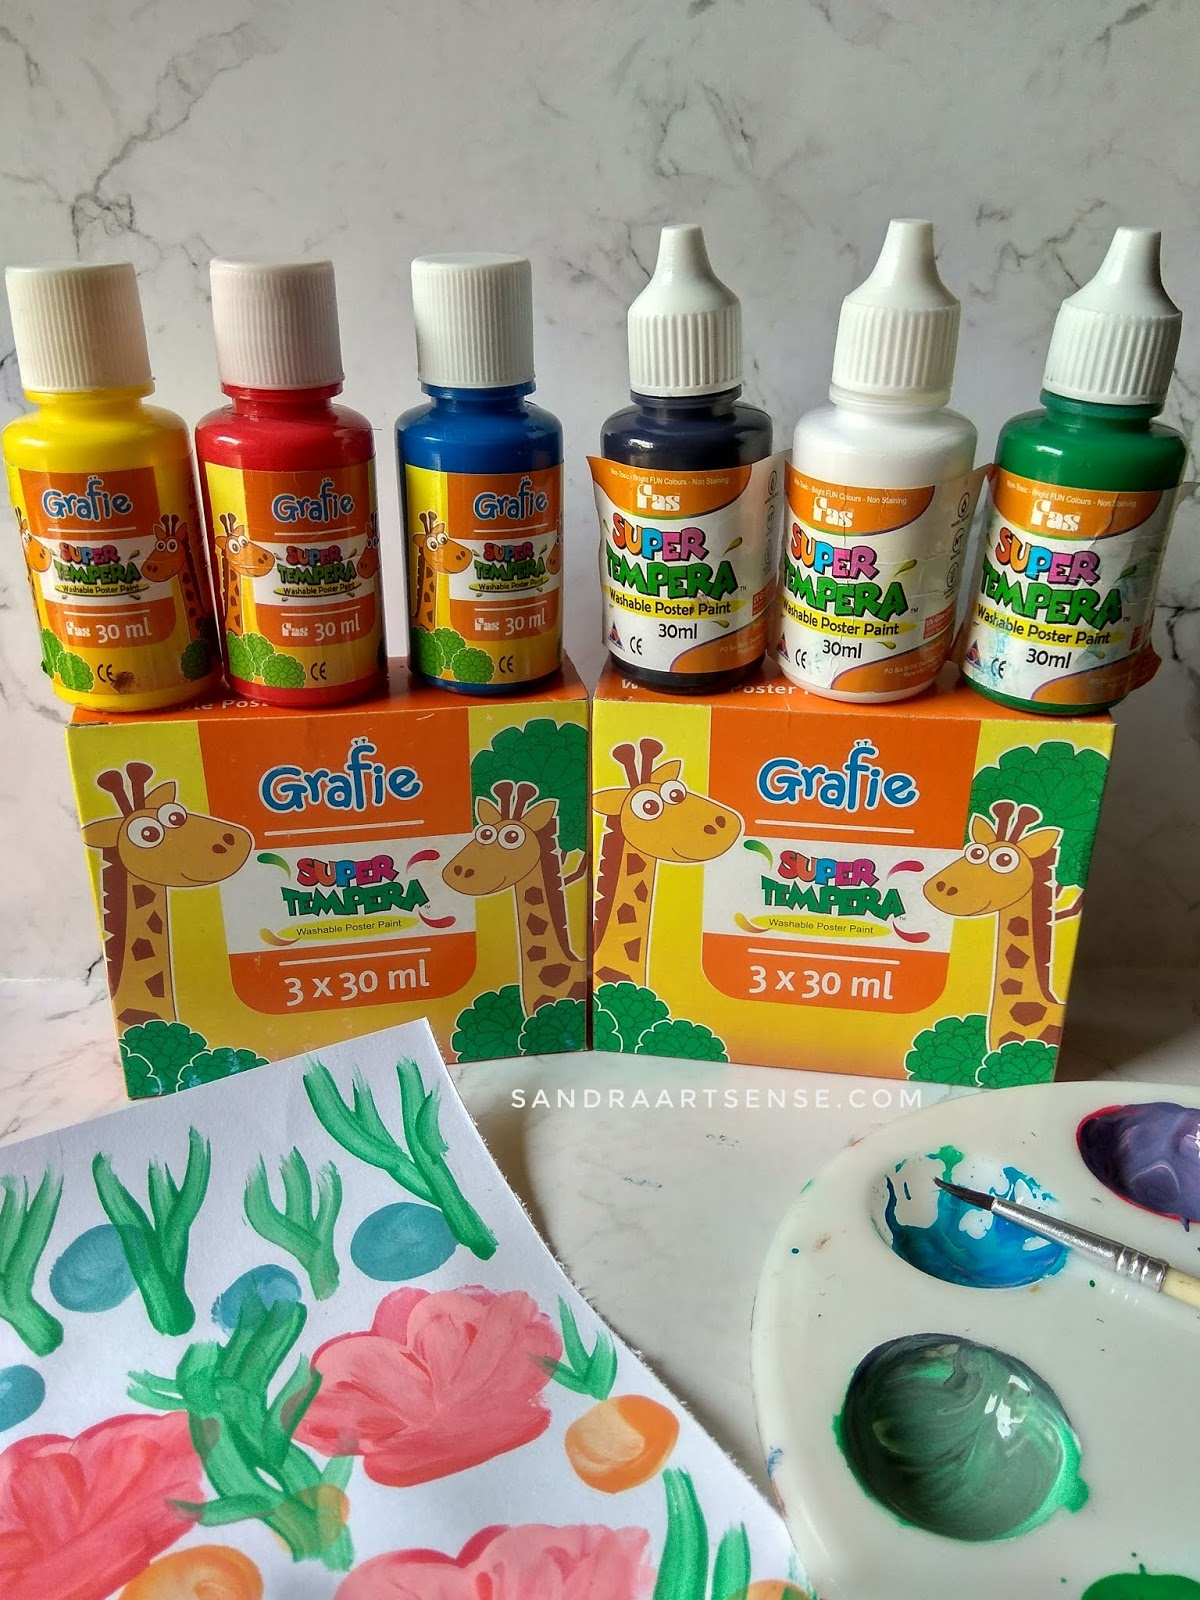 Sandraartsense Com Review Cat Poster Super Tempera Untuk Finger Painting Anak Anak